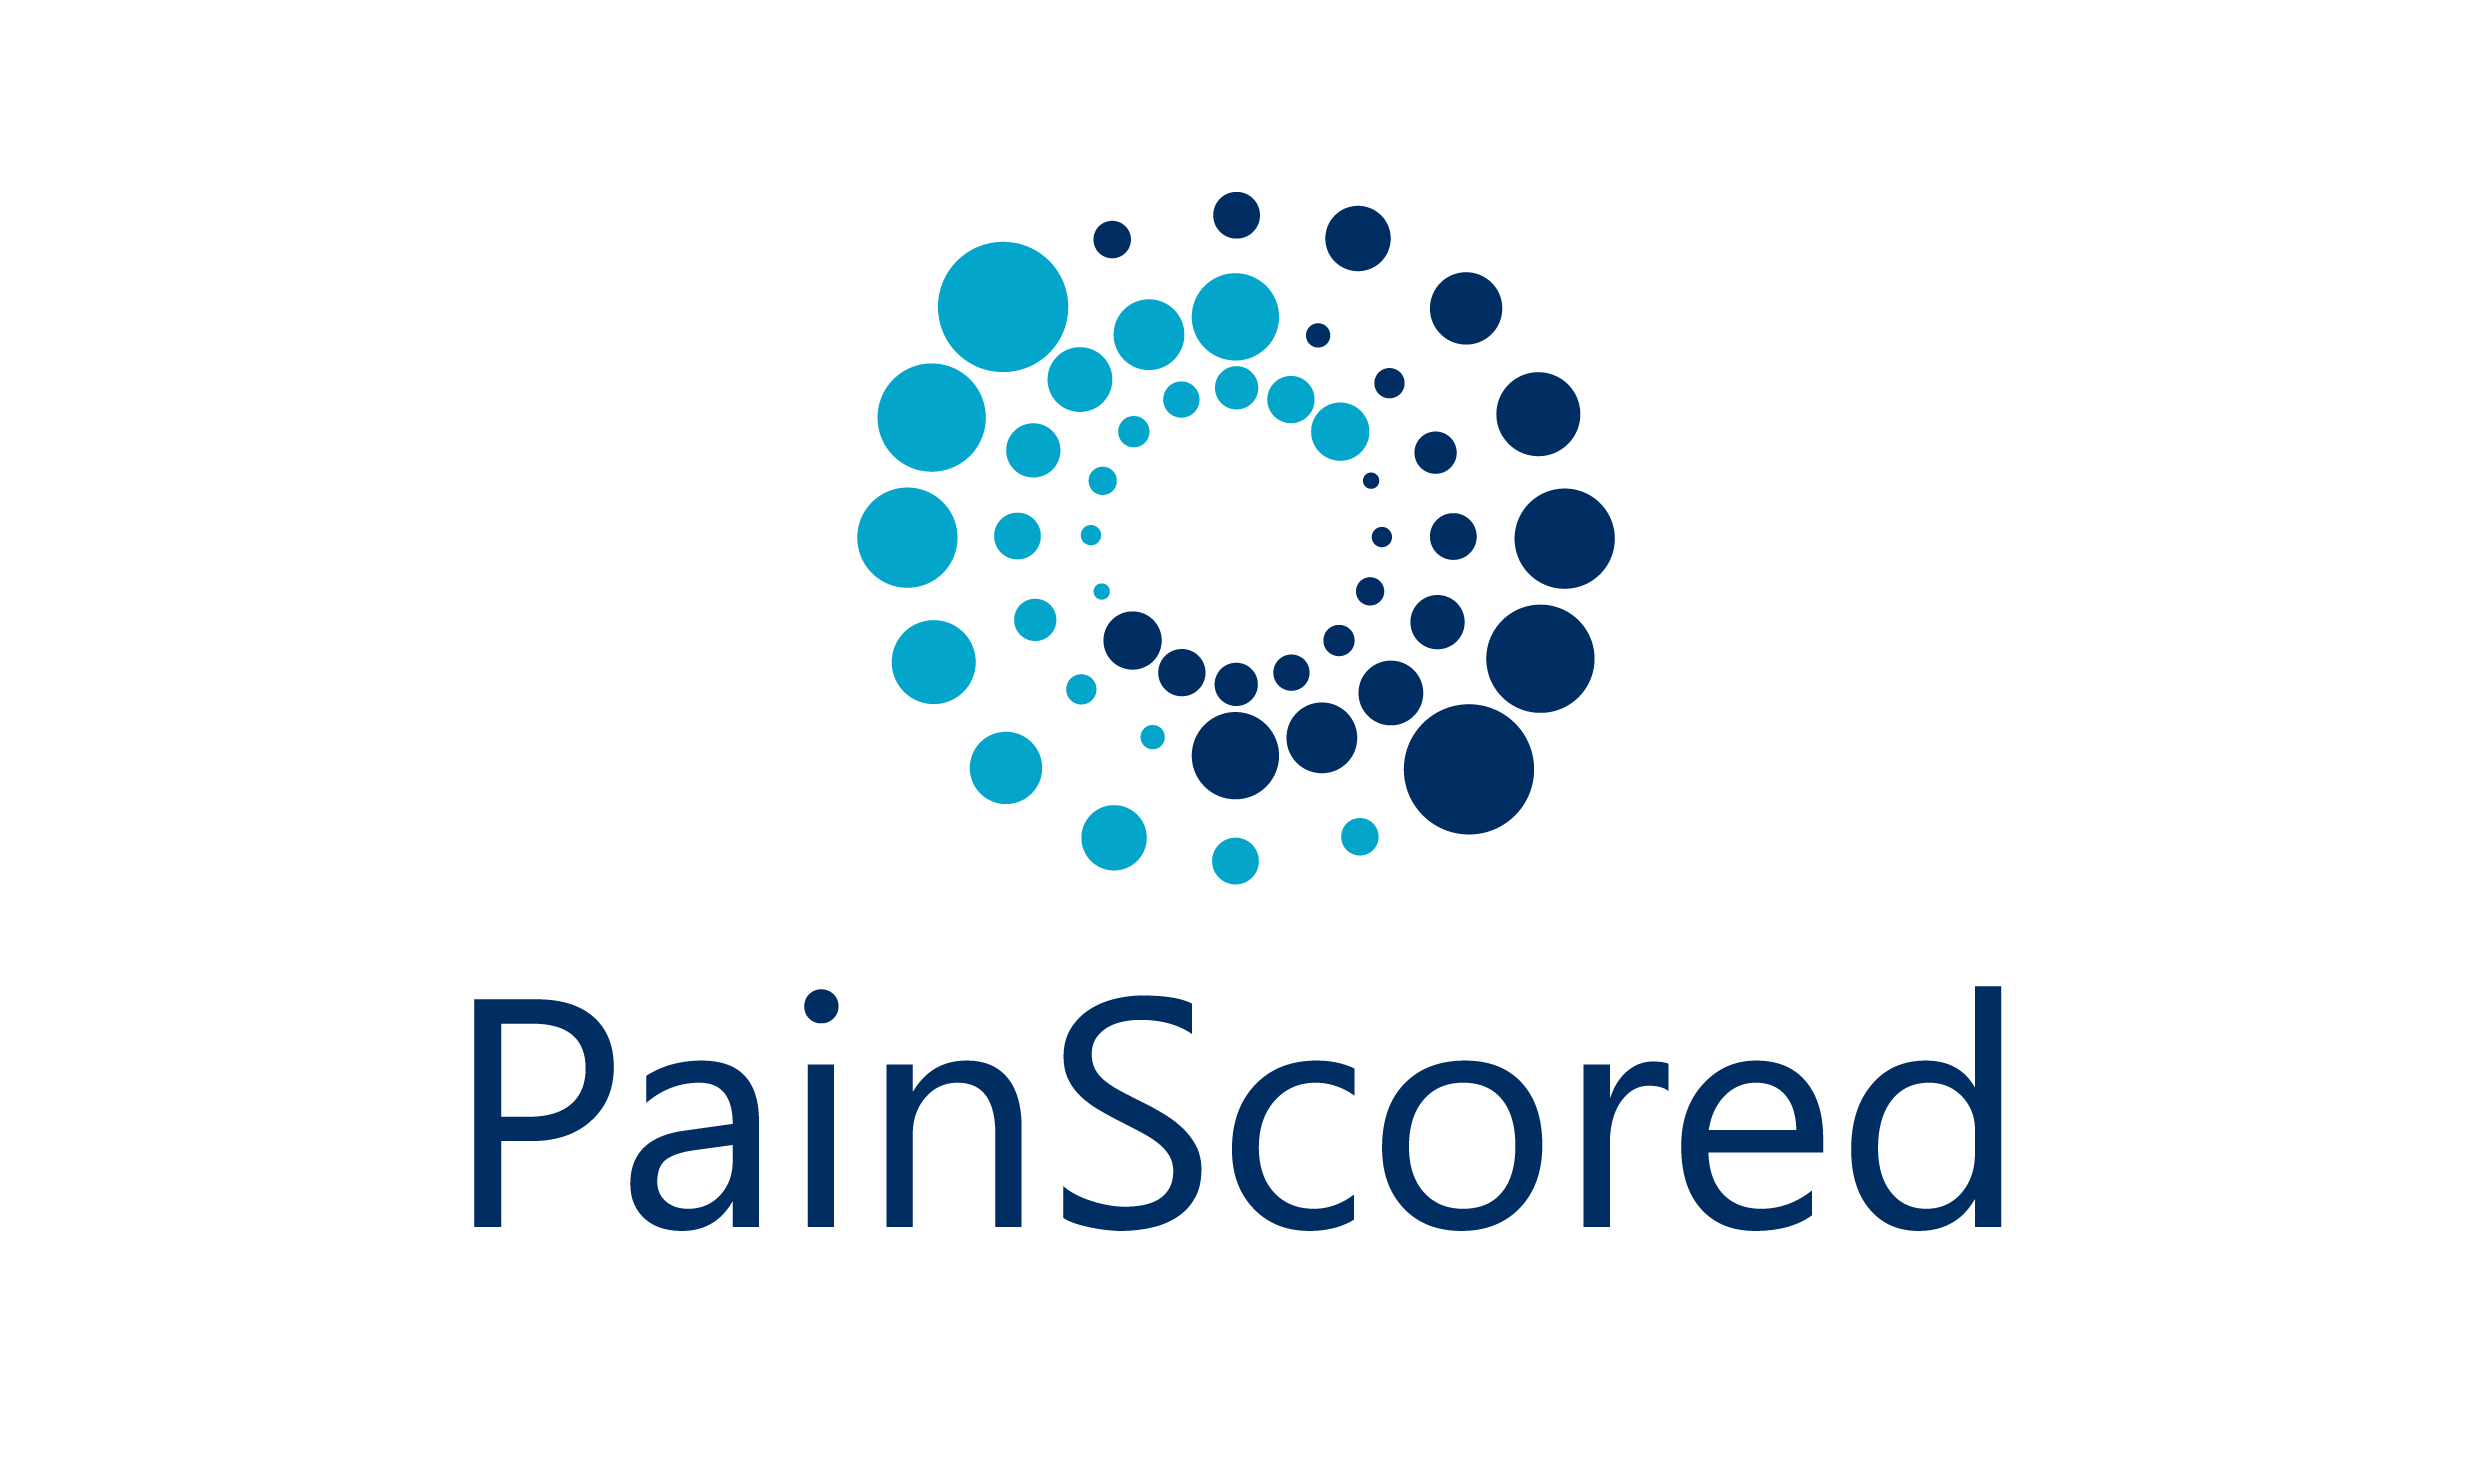 Patient Premier's Innovative Pain Scored™ Keeps Patients and Providers Connected Despite COVID-19